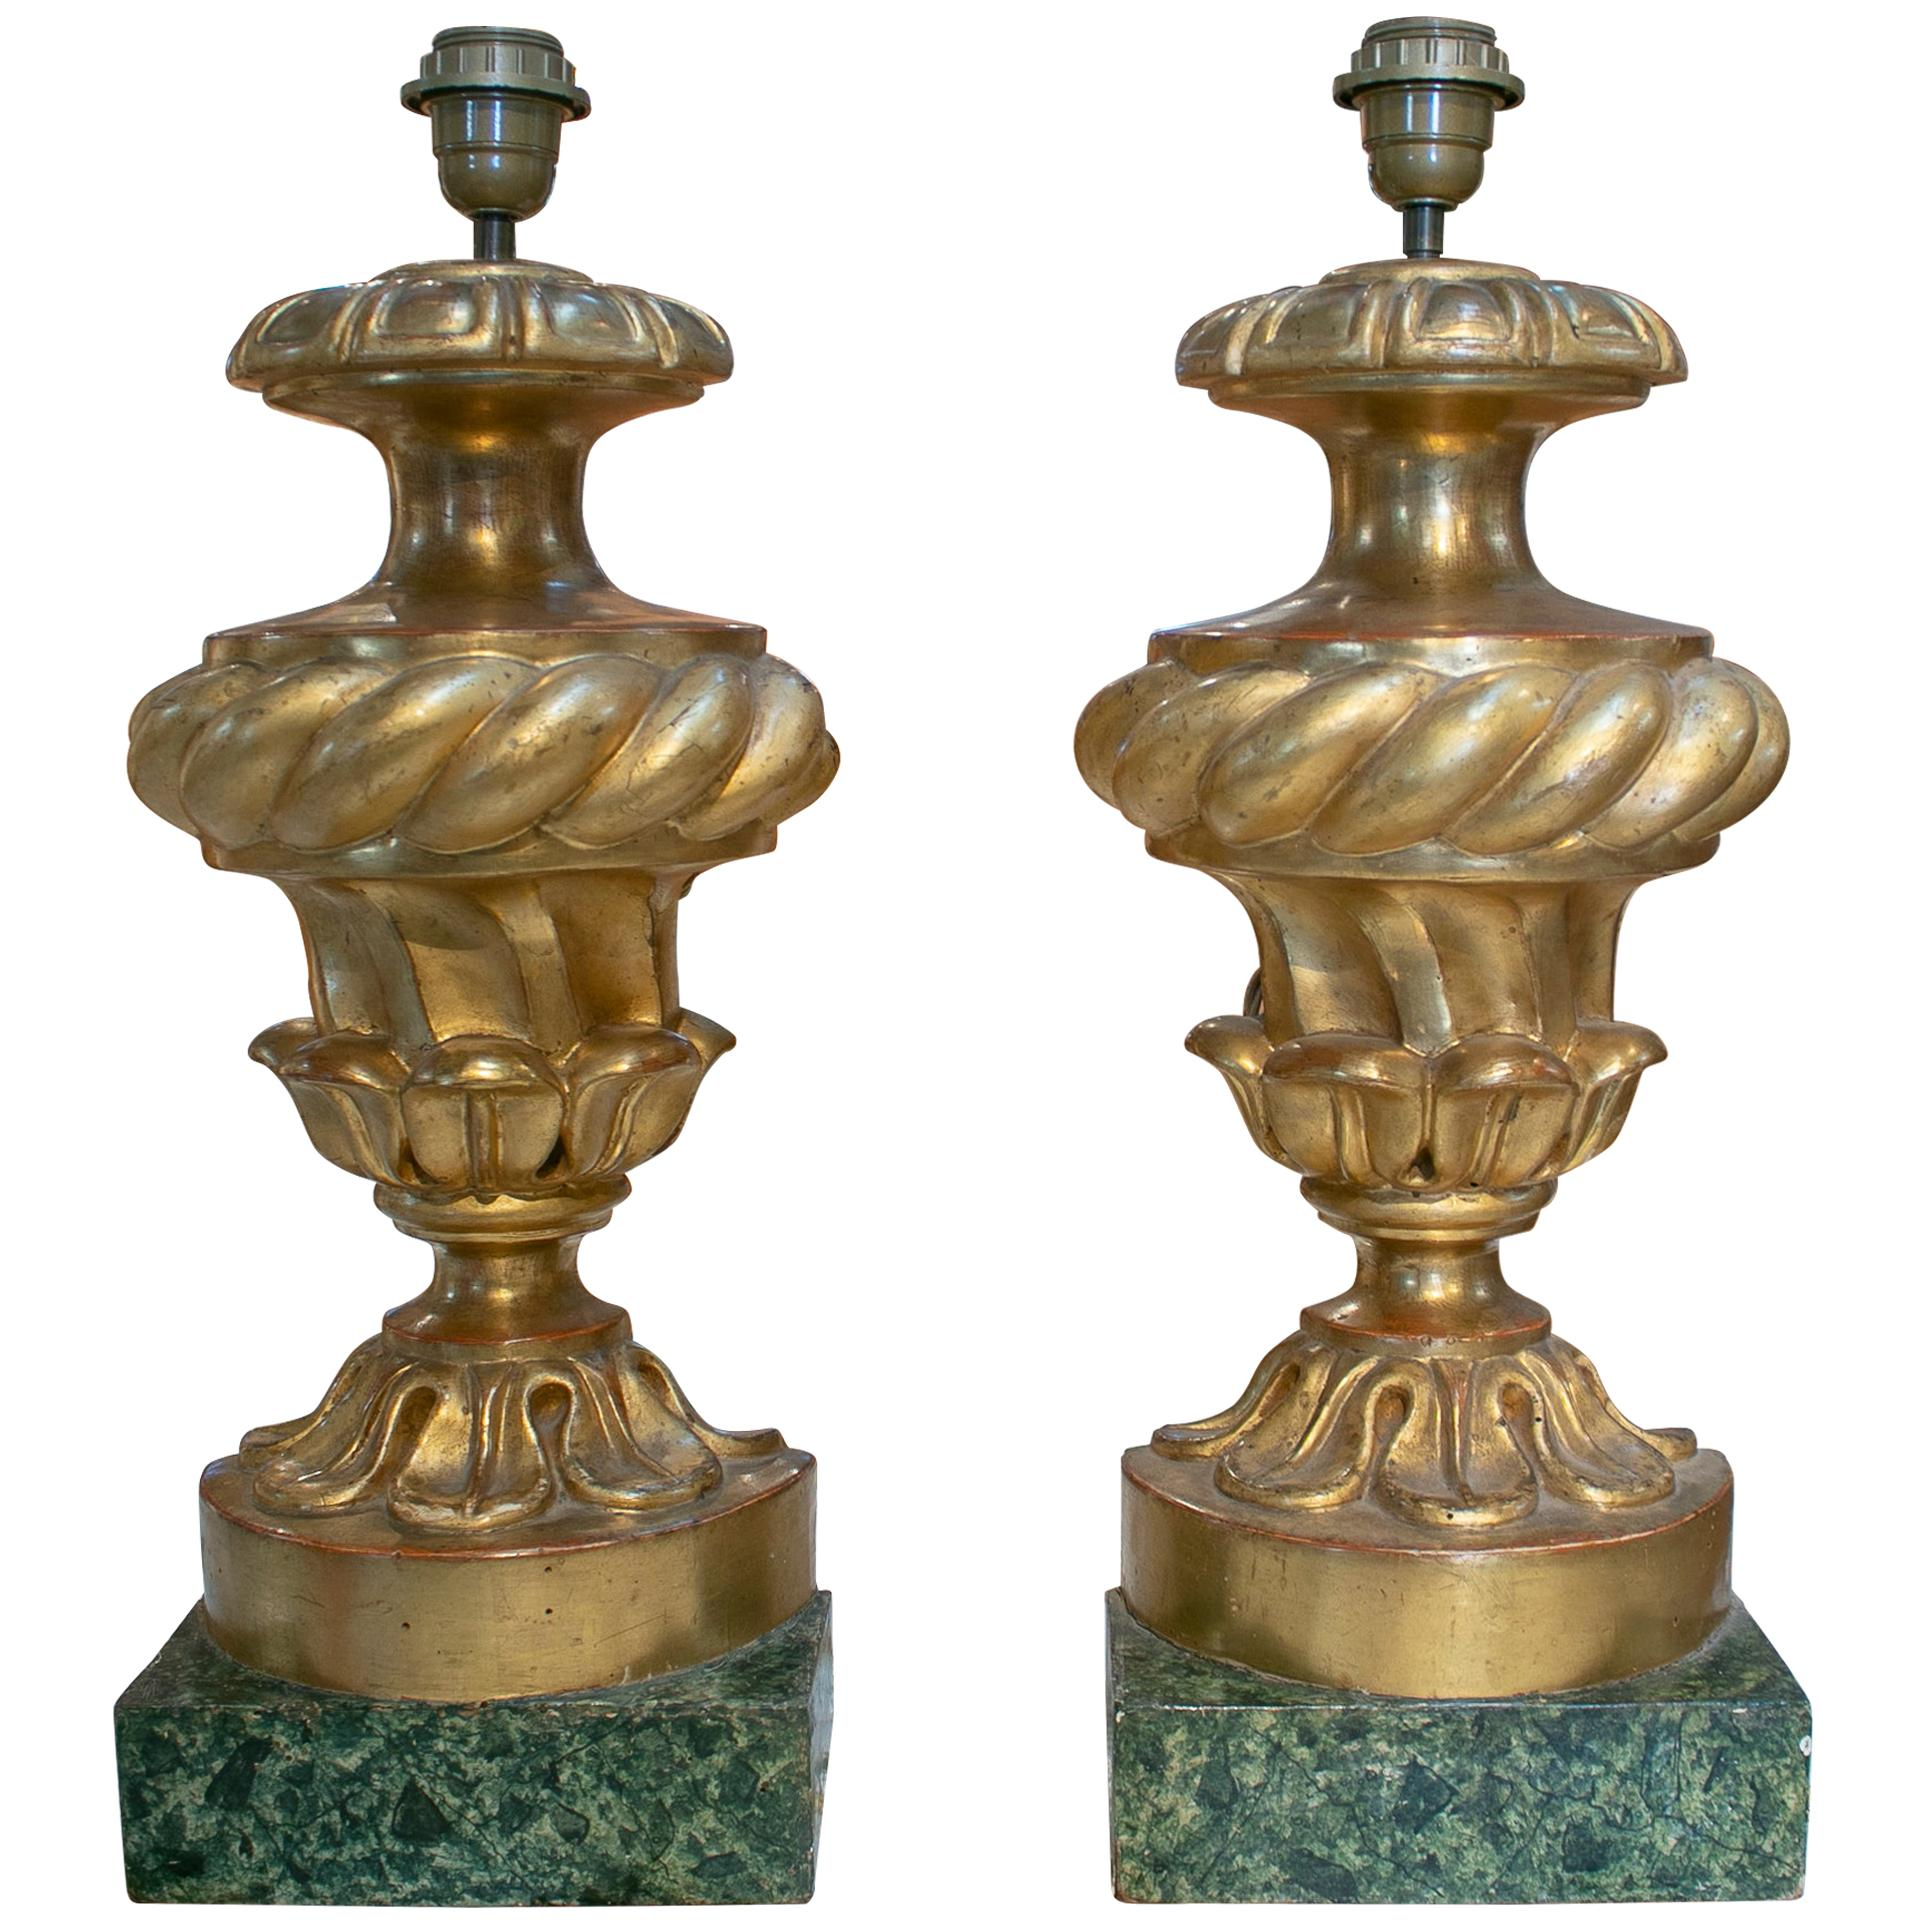 19th Century Pair of Gold Gilt Wooden Table Lamps with Marbled Base